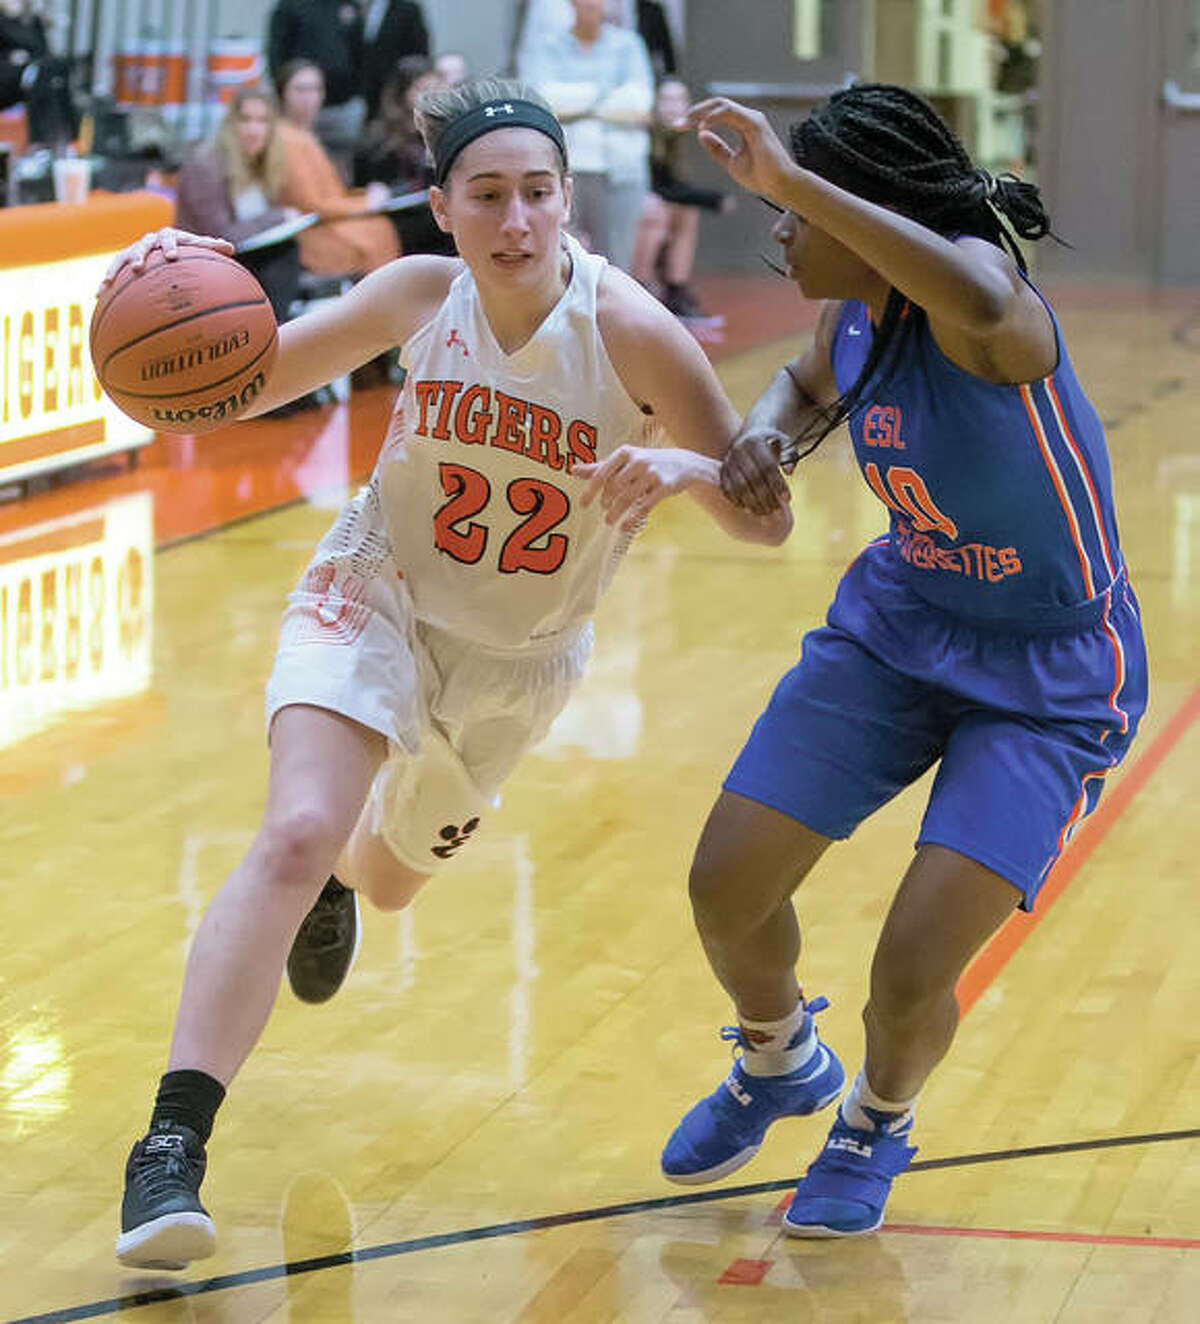 Edwardsville's Kate Martin (left) drives on East St. Louis' Rokelle Stanley during the Tigers' SWC girls basketball victory Wednesday night at Lucco-Jackson Gym in Edwardsville. The 6-foot Martin, signed with Iowa, will be one of many Division I recruits in the 16-team field at the prestigious Visitation Christmas Tournament starting Saturday in St. Louis. The 10-0 Tigers, making their debut in the tourney, are the No. 2 seed.